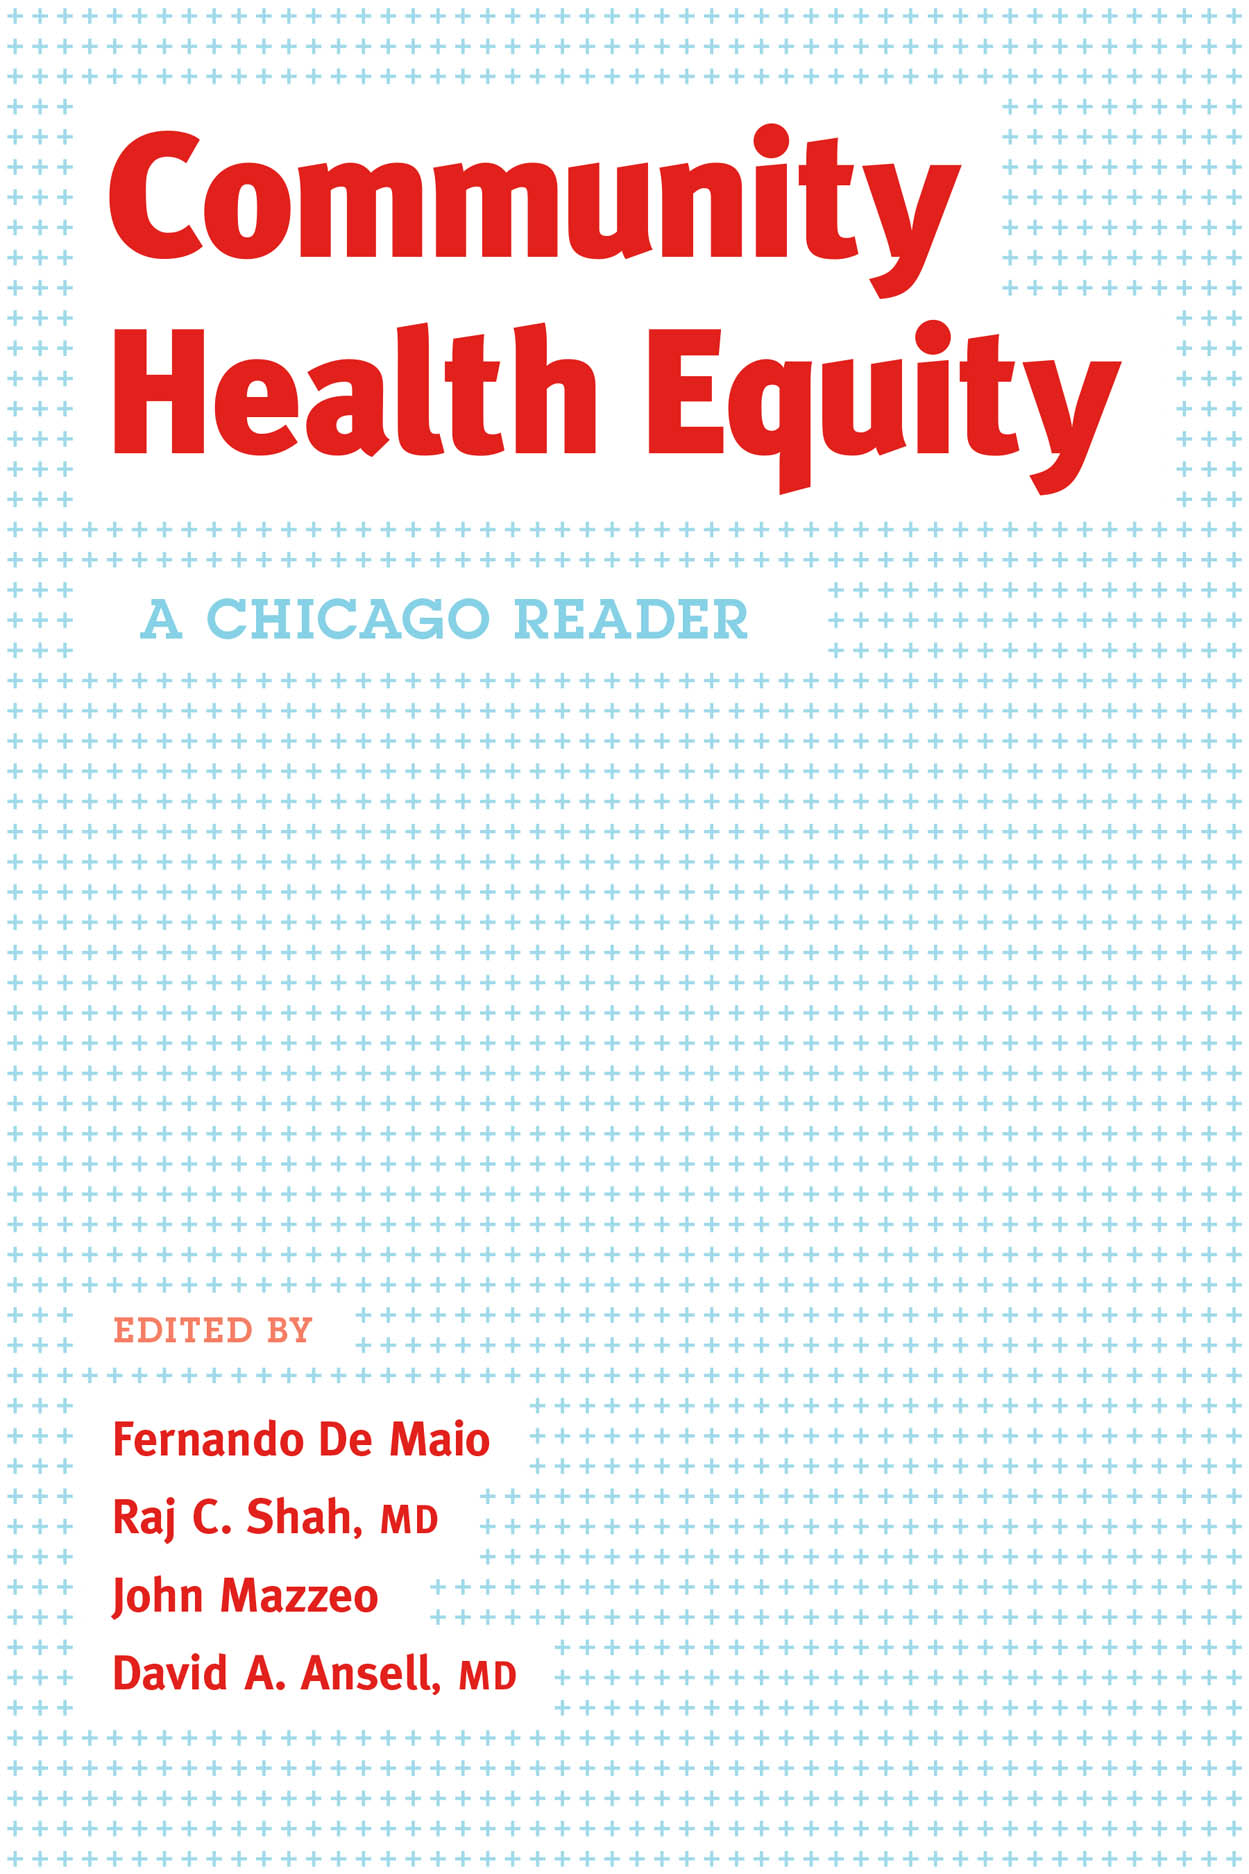 Community Health Equity: A Chicago Reader